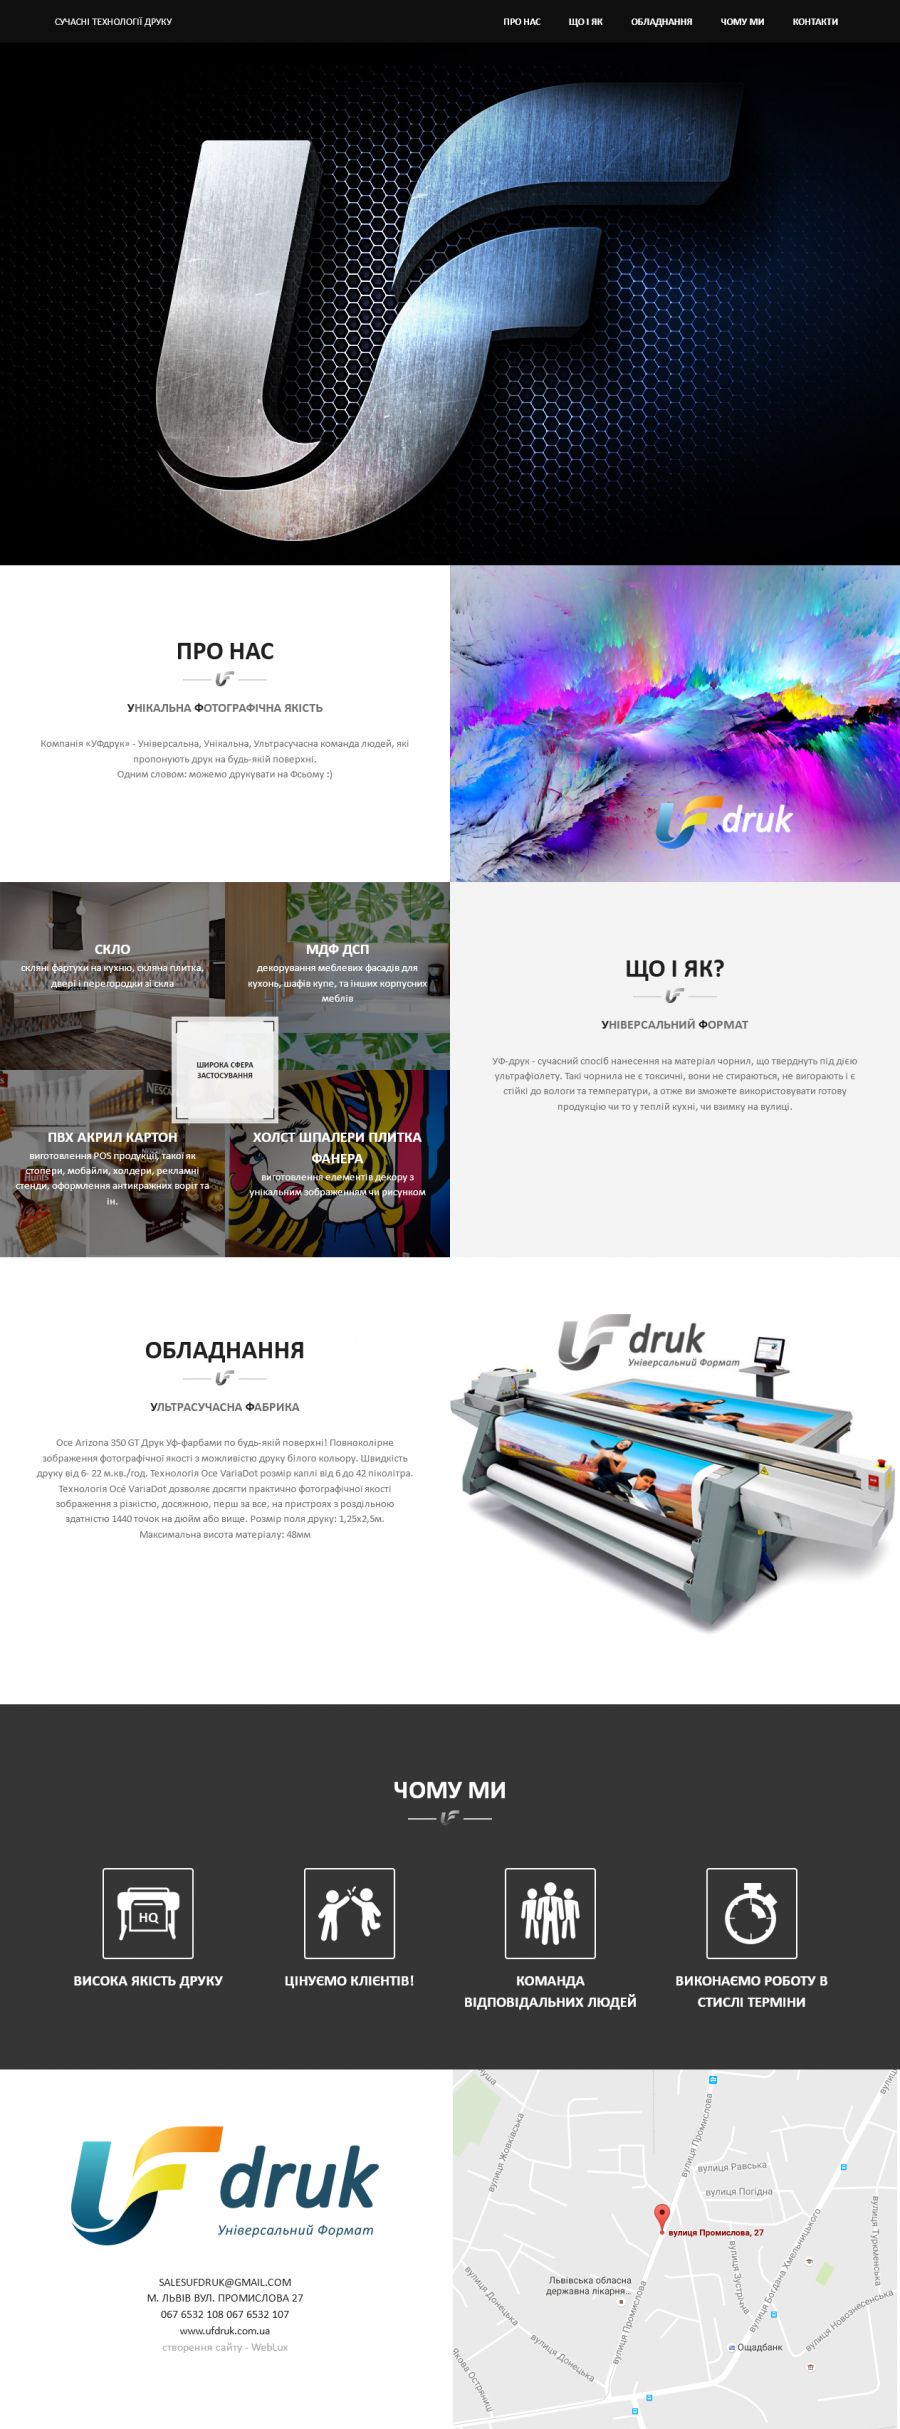 Creating a site for printing «Uf Druk»